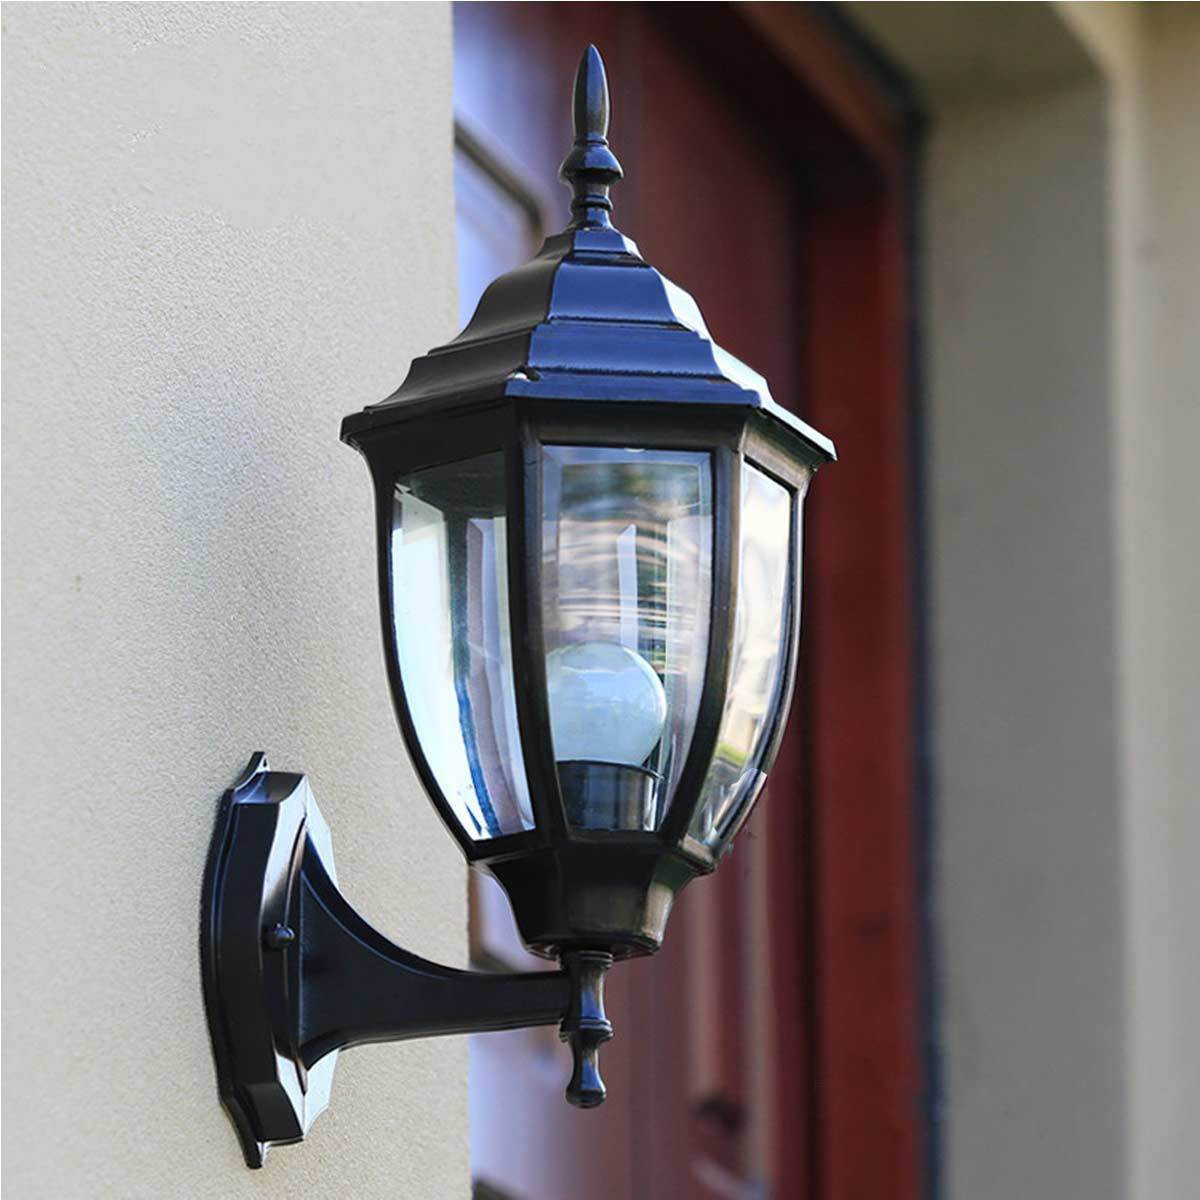 Retro yard outdoor garden lamp exterior lantern wall lighting sconce aluminum ebay for Exterior light sconce